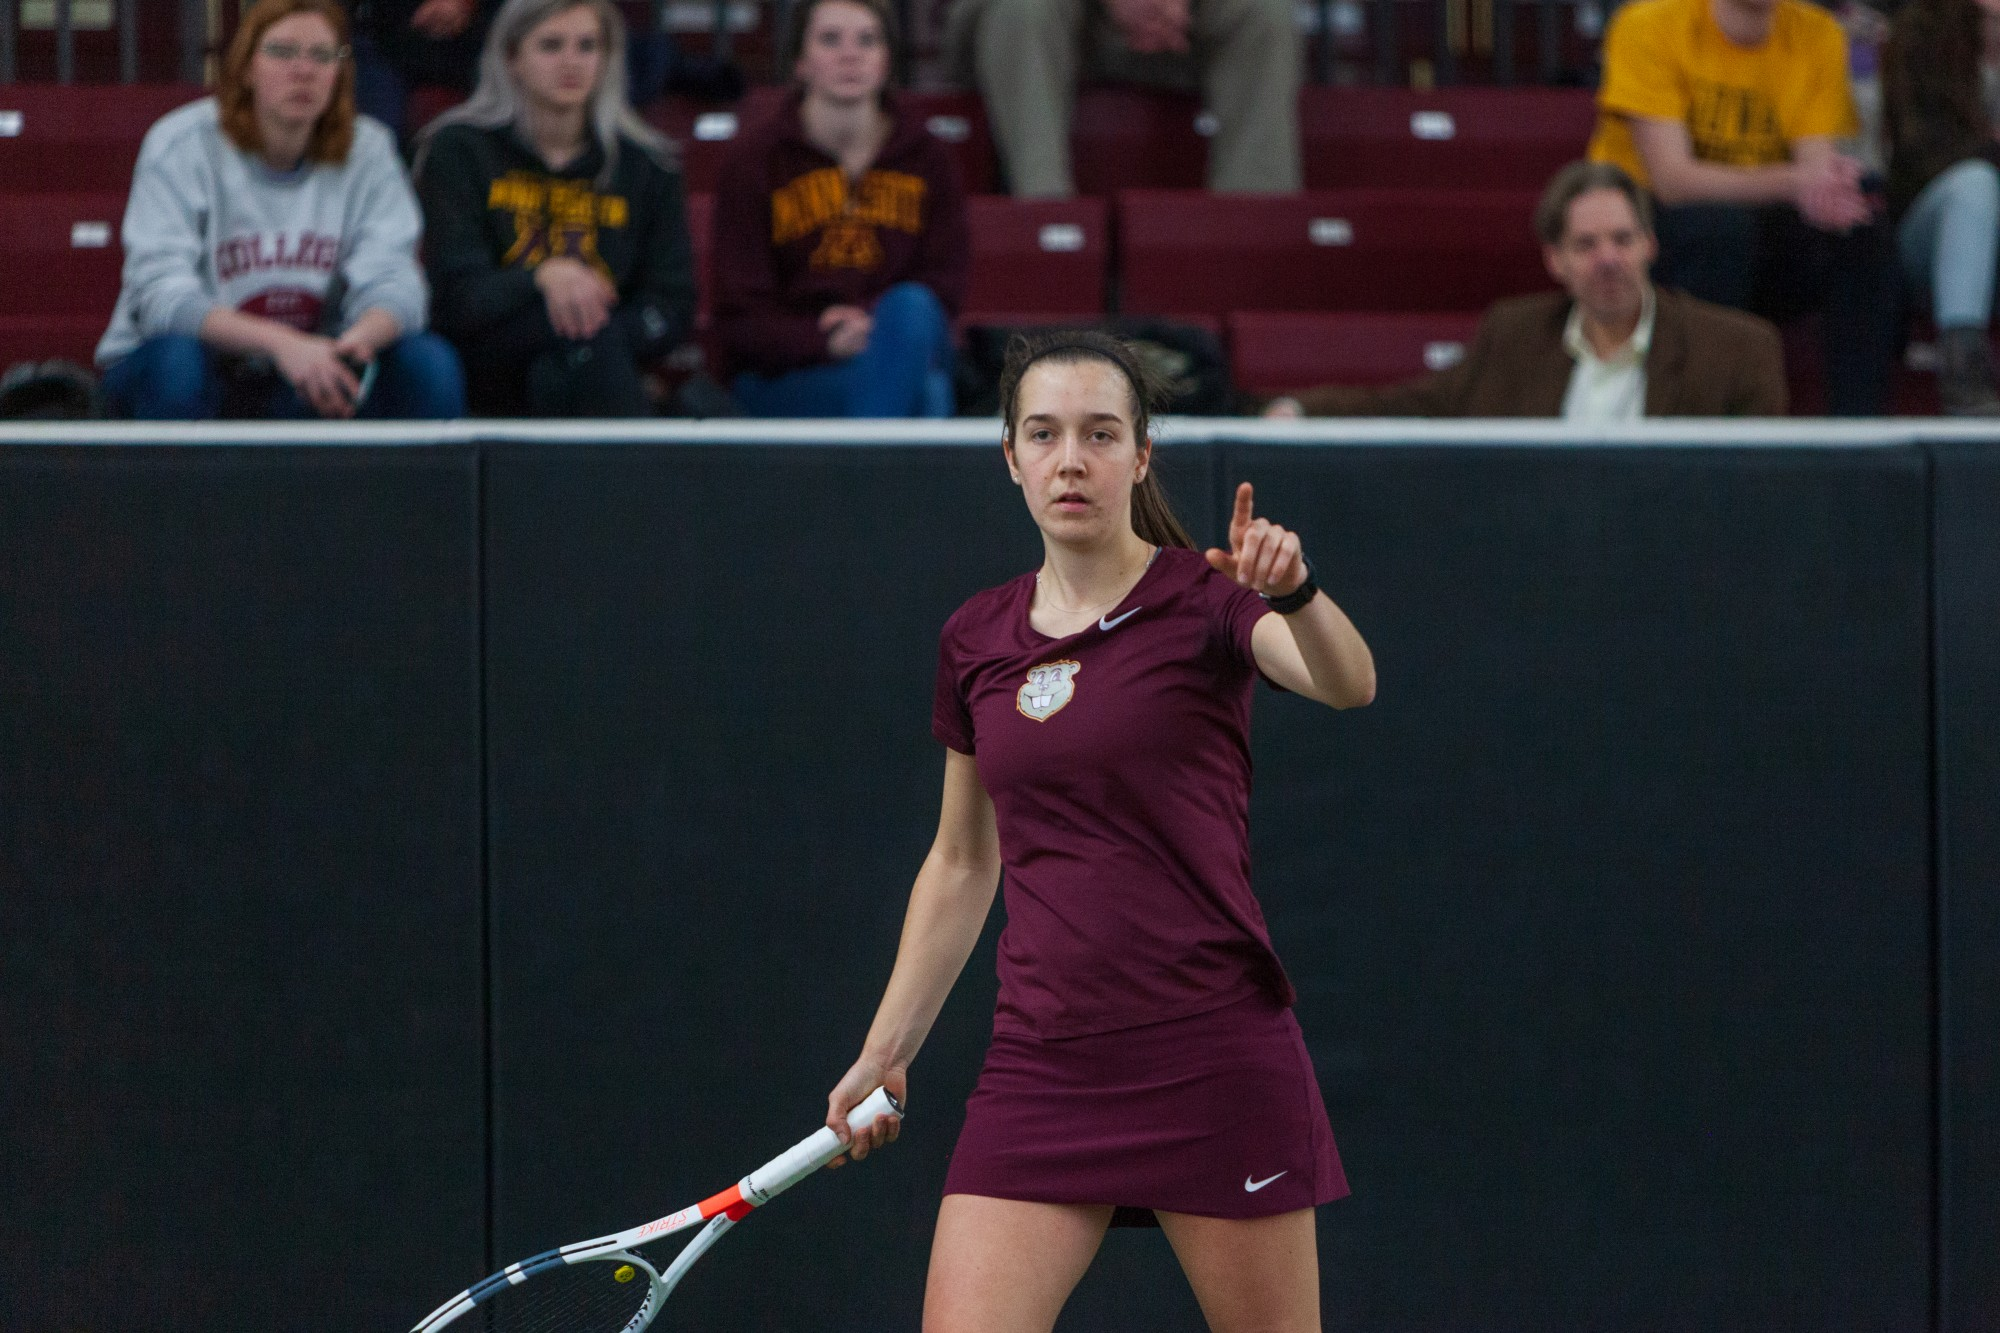 Gophers Senior Cammy Frei signals to her teammate at the Baseline Tennis Center on Friday, Feb. 7.